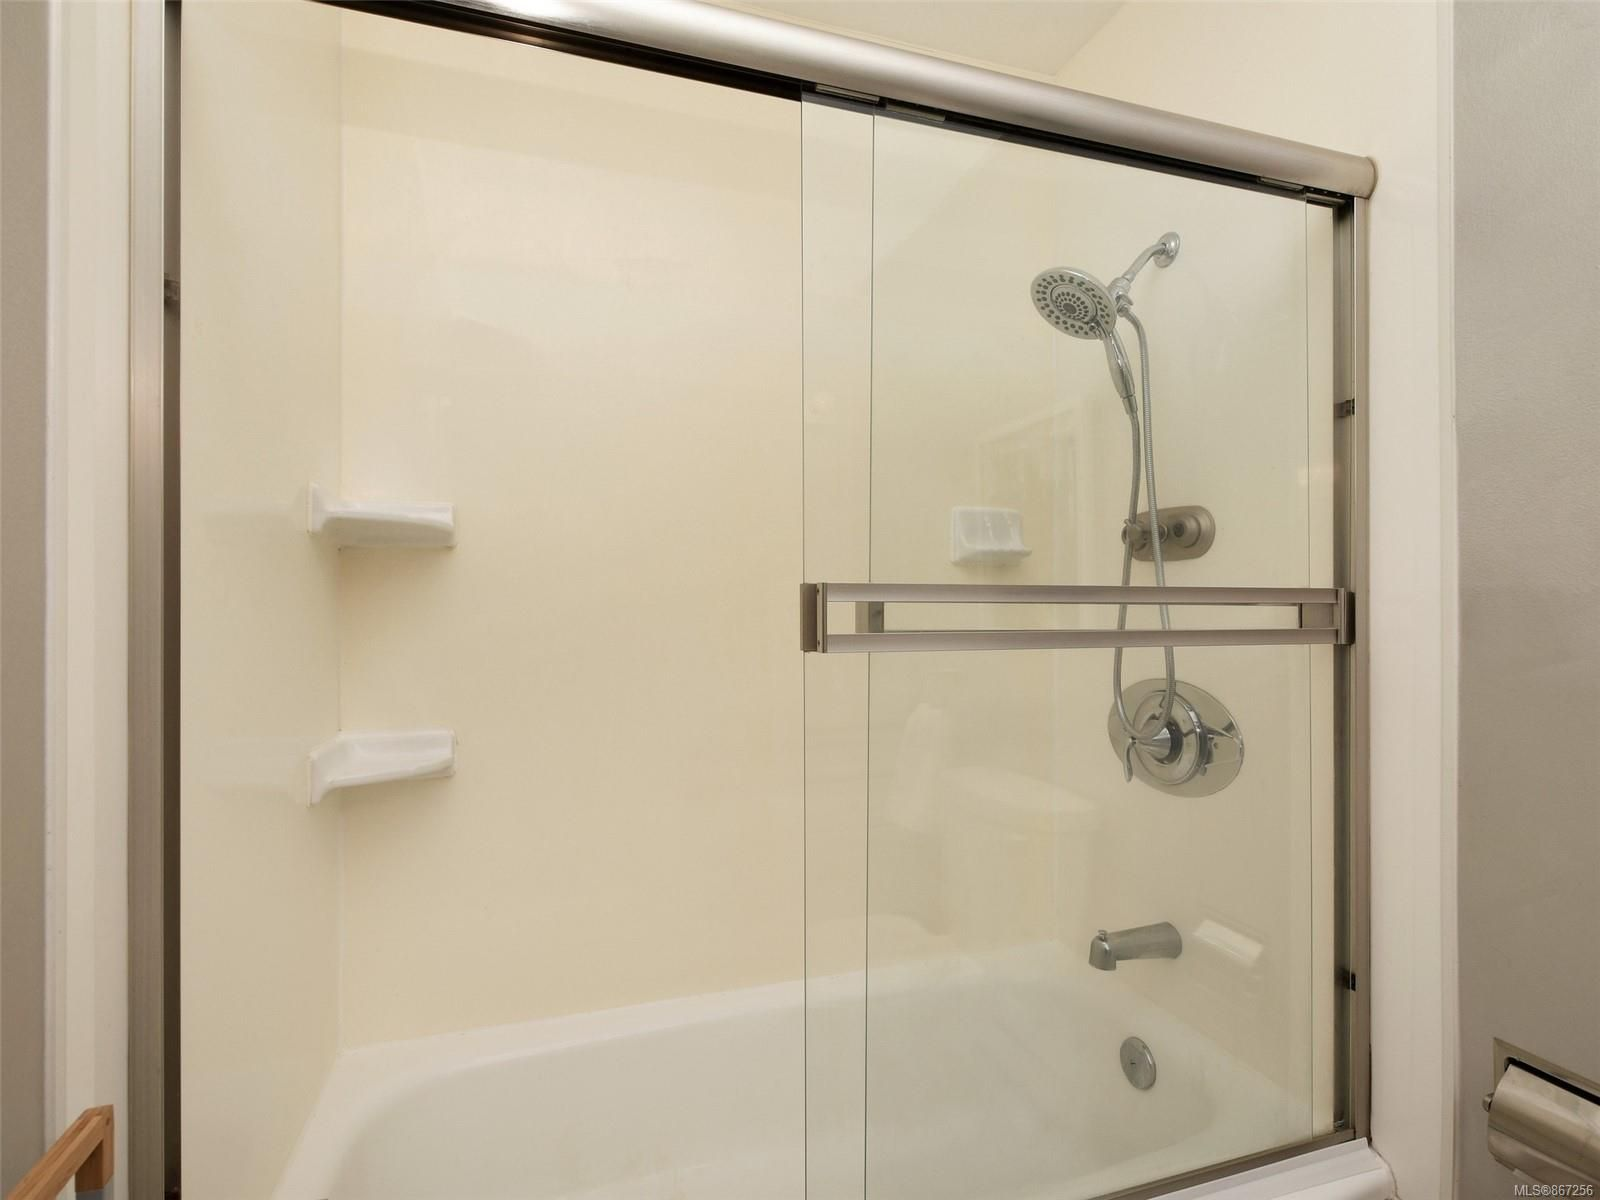 Photo 16: Photos: 5 869 Swan St in : SE Swan Lake Row/Townhouse for sale (Saanich East)  : MLS®# 867256